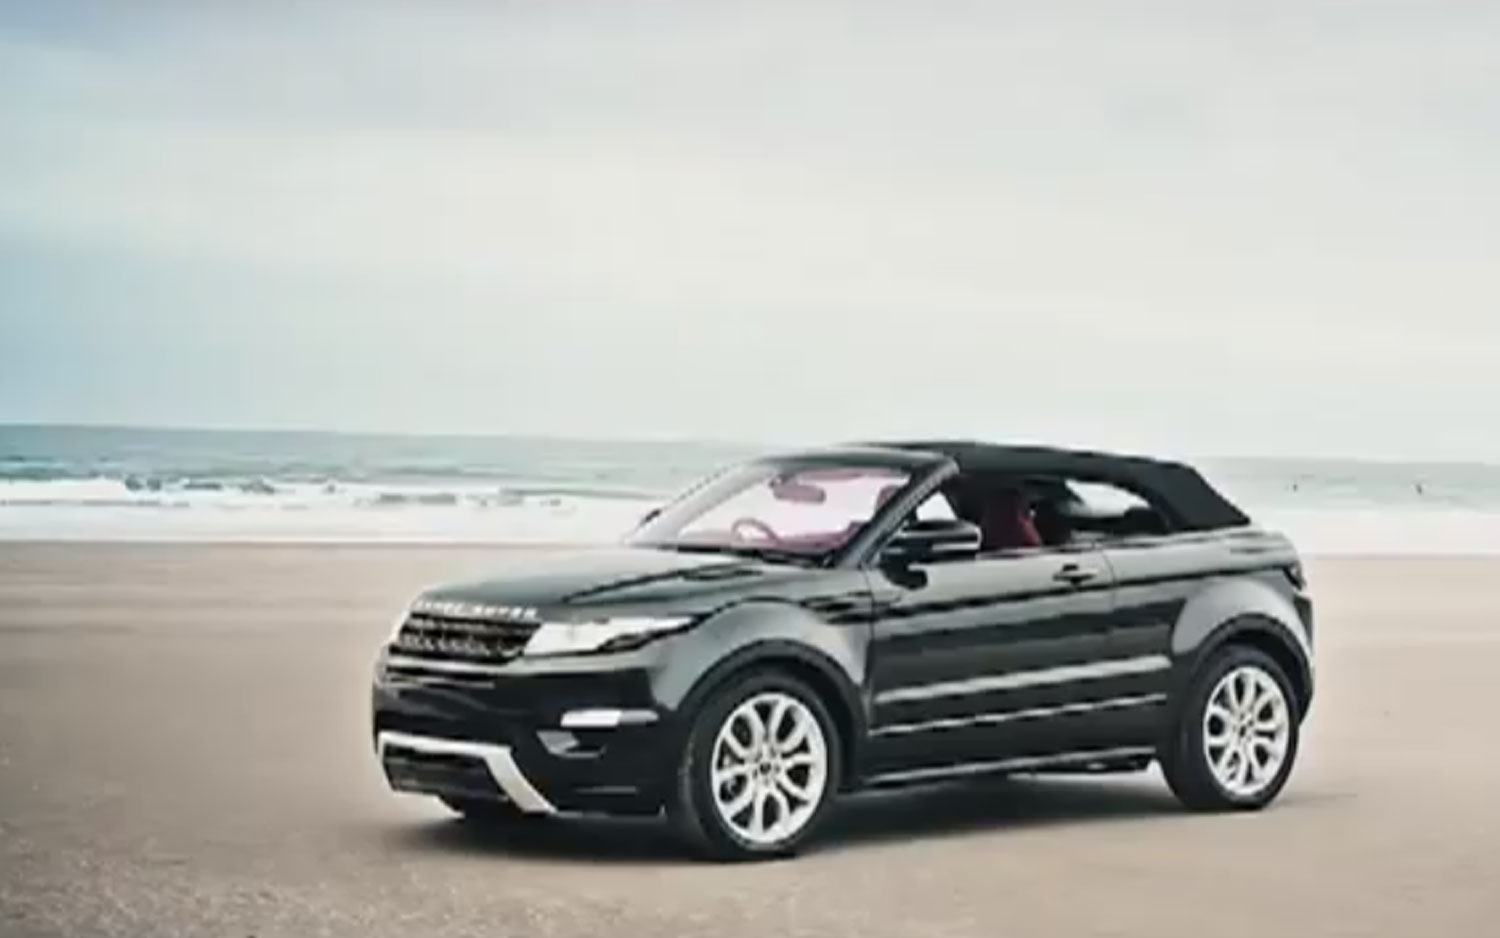 feature flick range rover evoque convertible enjoys fresh air. Black Bedroom Furniture Sets. Home Design Ideas